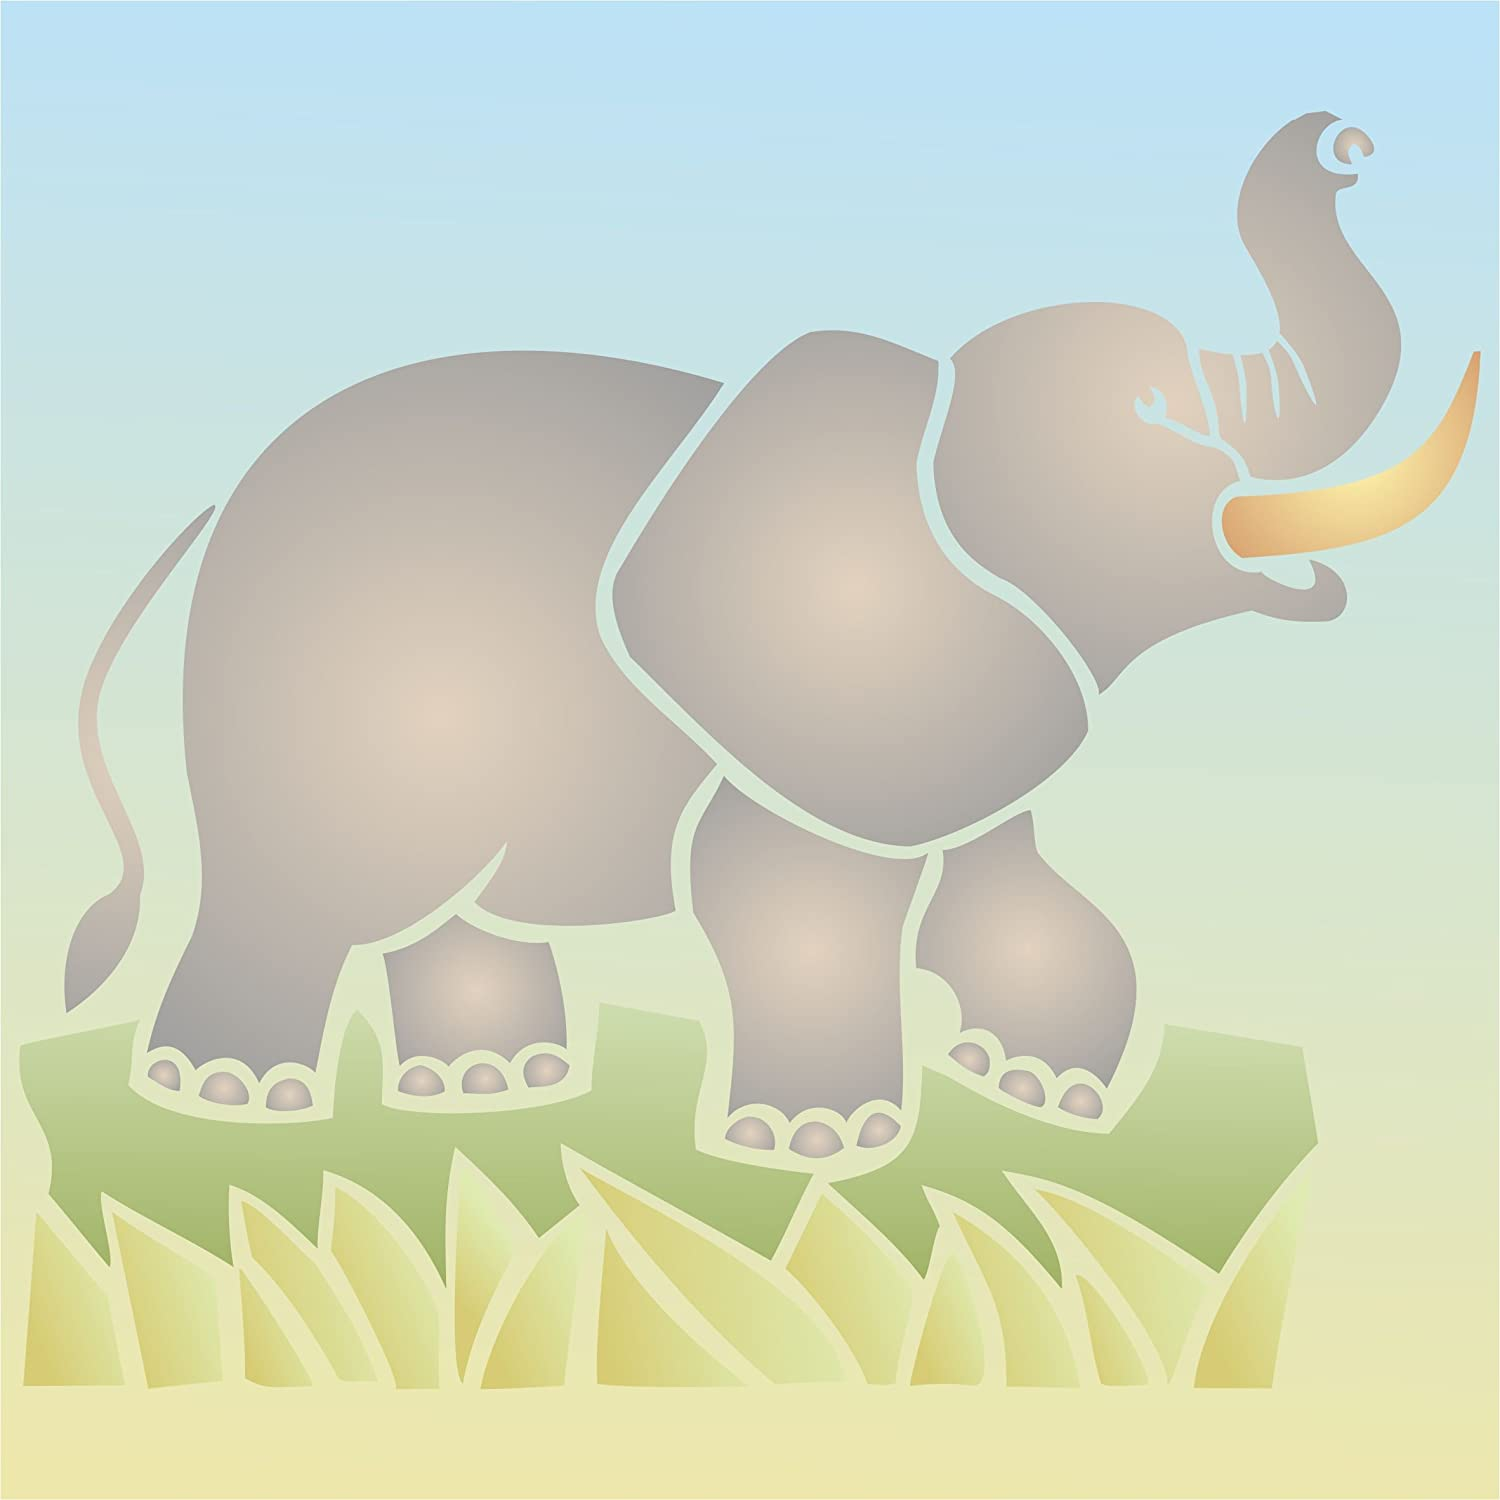 Amazon african elephant stencil size 8w x 7h reusable amazon african elephant stencil size 8w x 7h reusable wall stencils for painting best quality african wild animal ideas use on walls floors amipublicfo Images